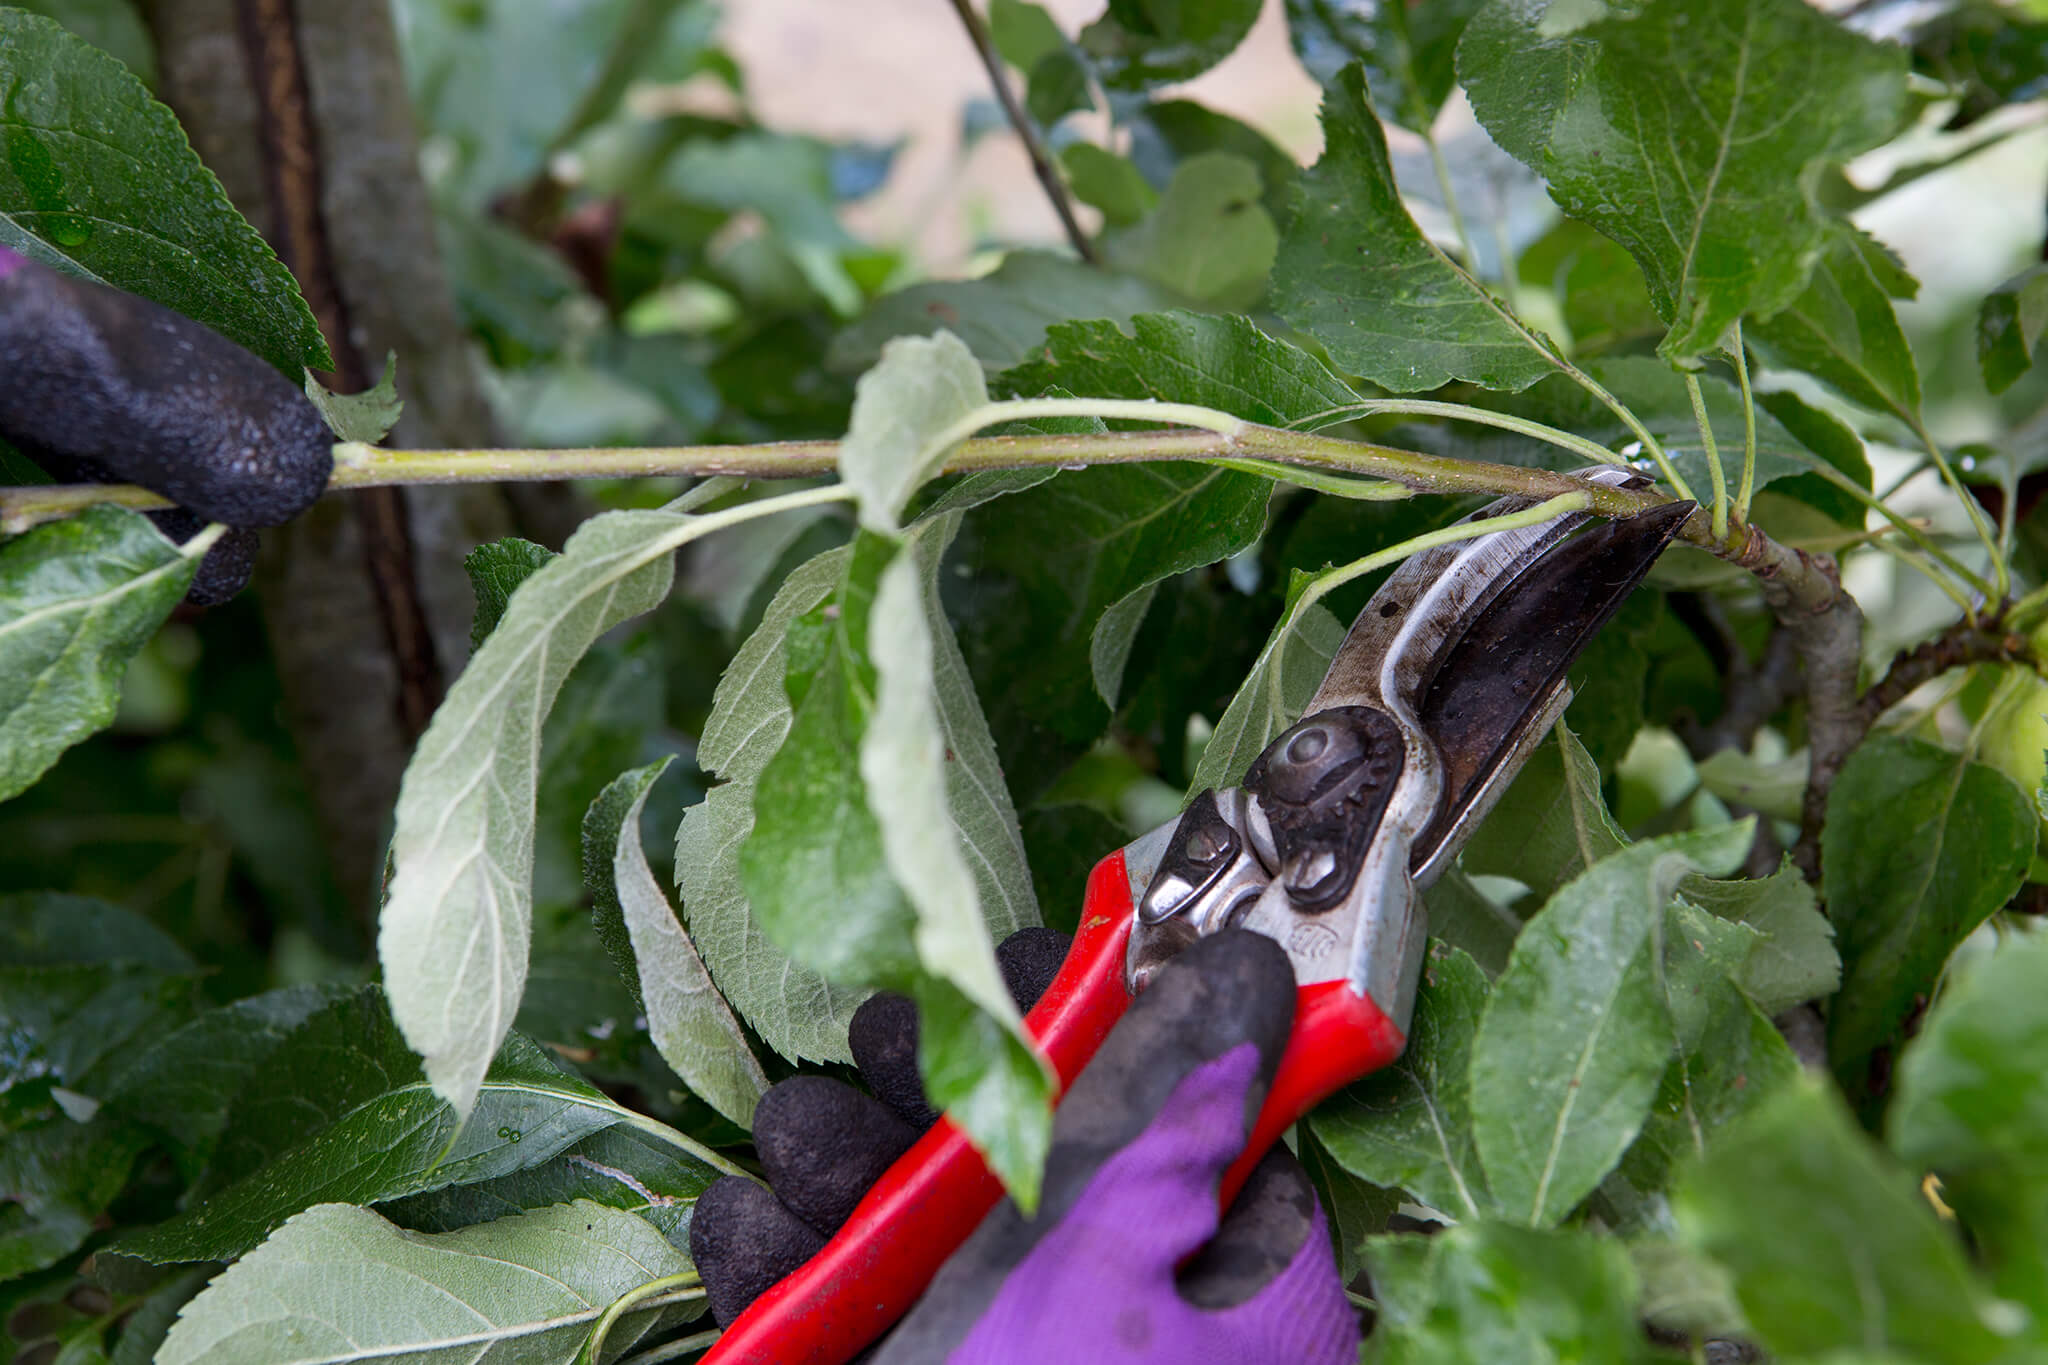 Cutting back apple tree sideshoots